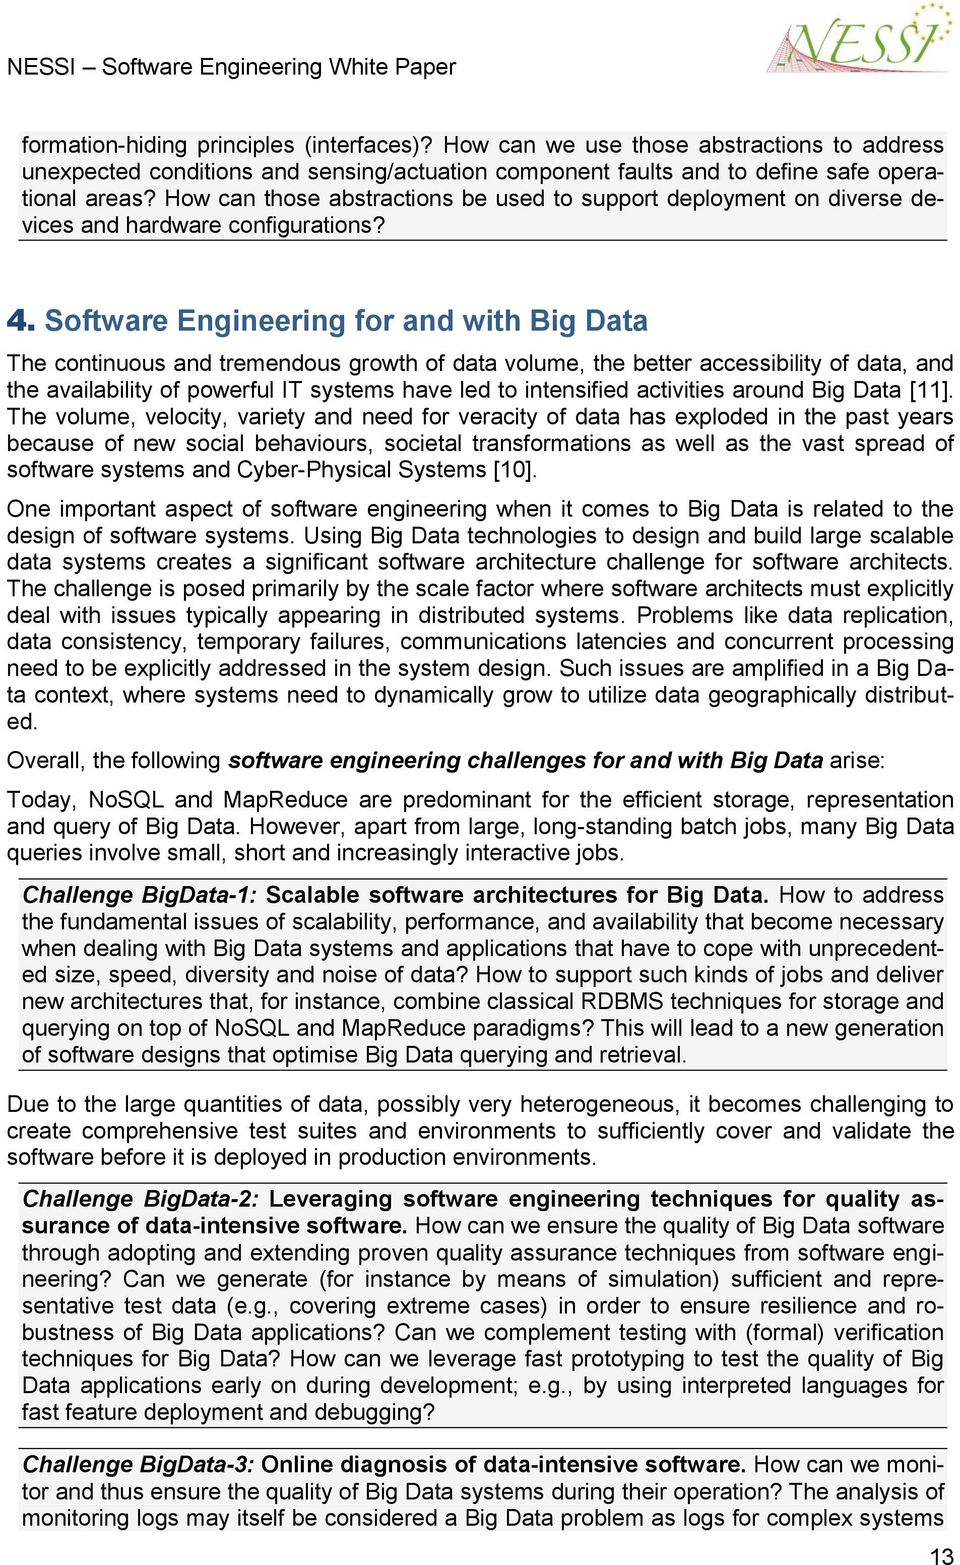 Software Engineering for and with Big Data The continuous and tremendous growth of data volume, the better accessibility of data, and the availability of powerful IT systems have led to intensified